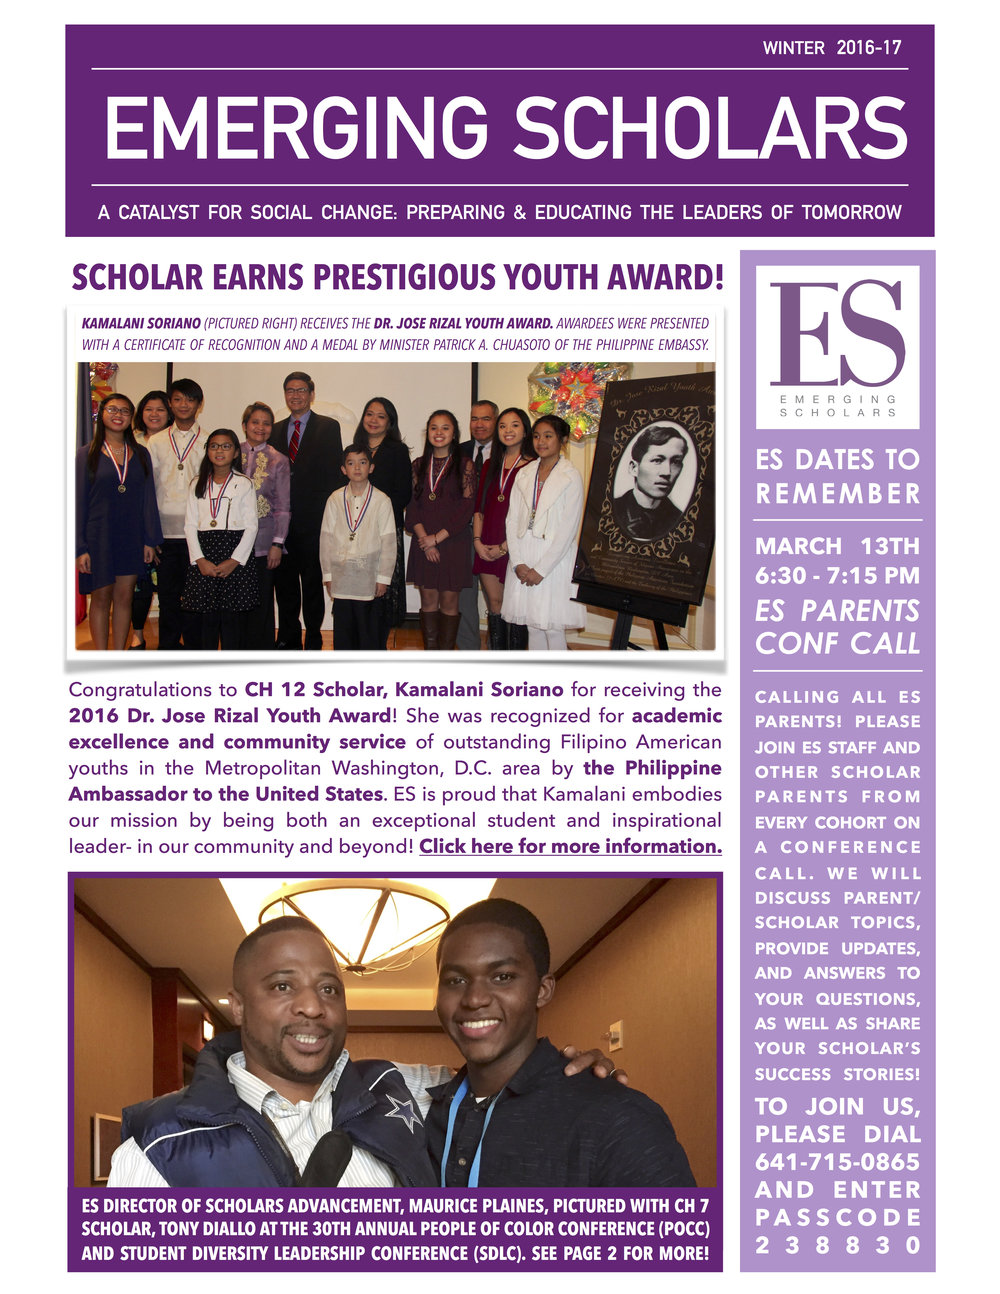 ES Spring 2017 Newsletter Cover Page 1.jpg